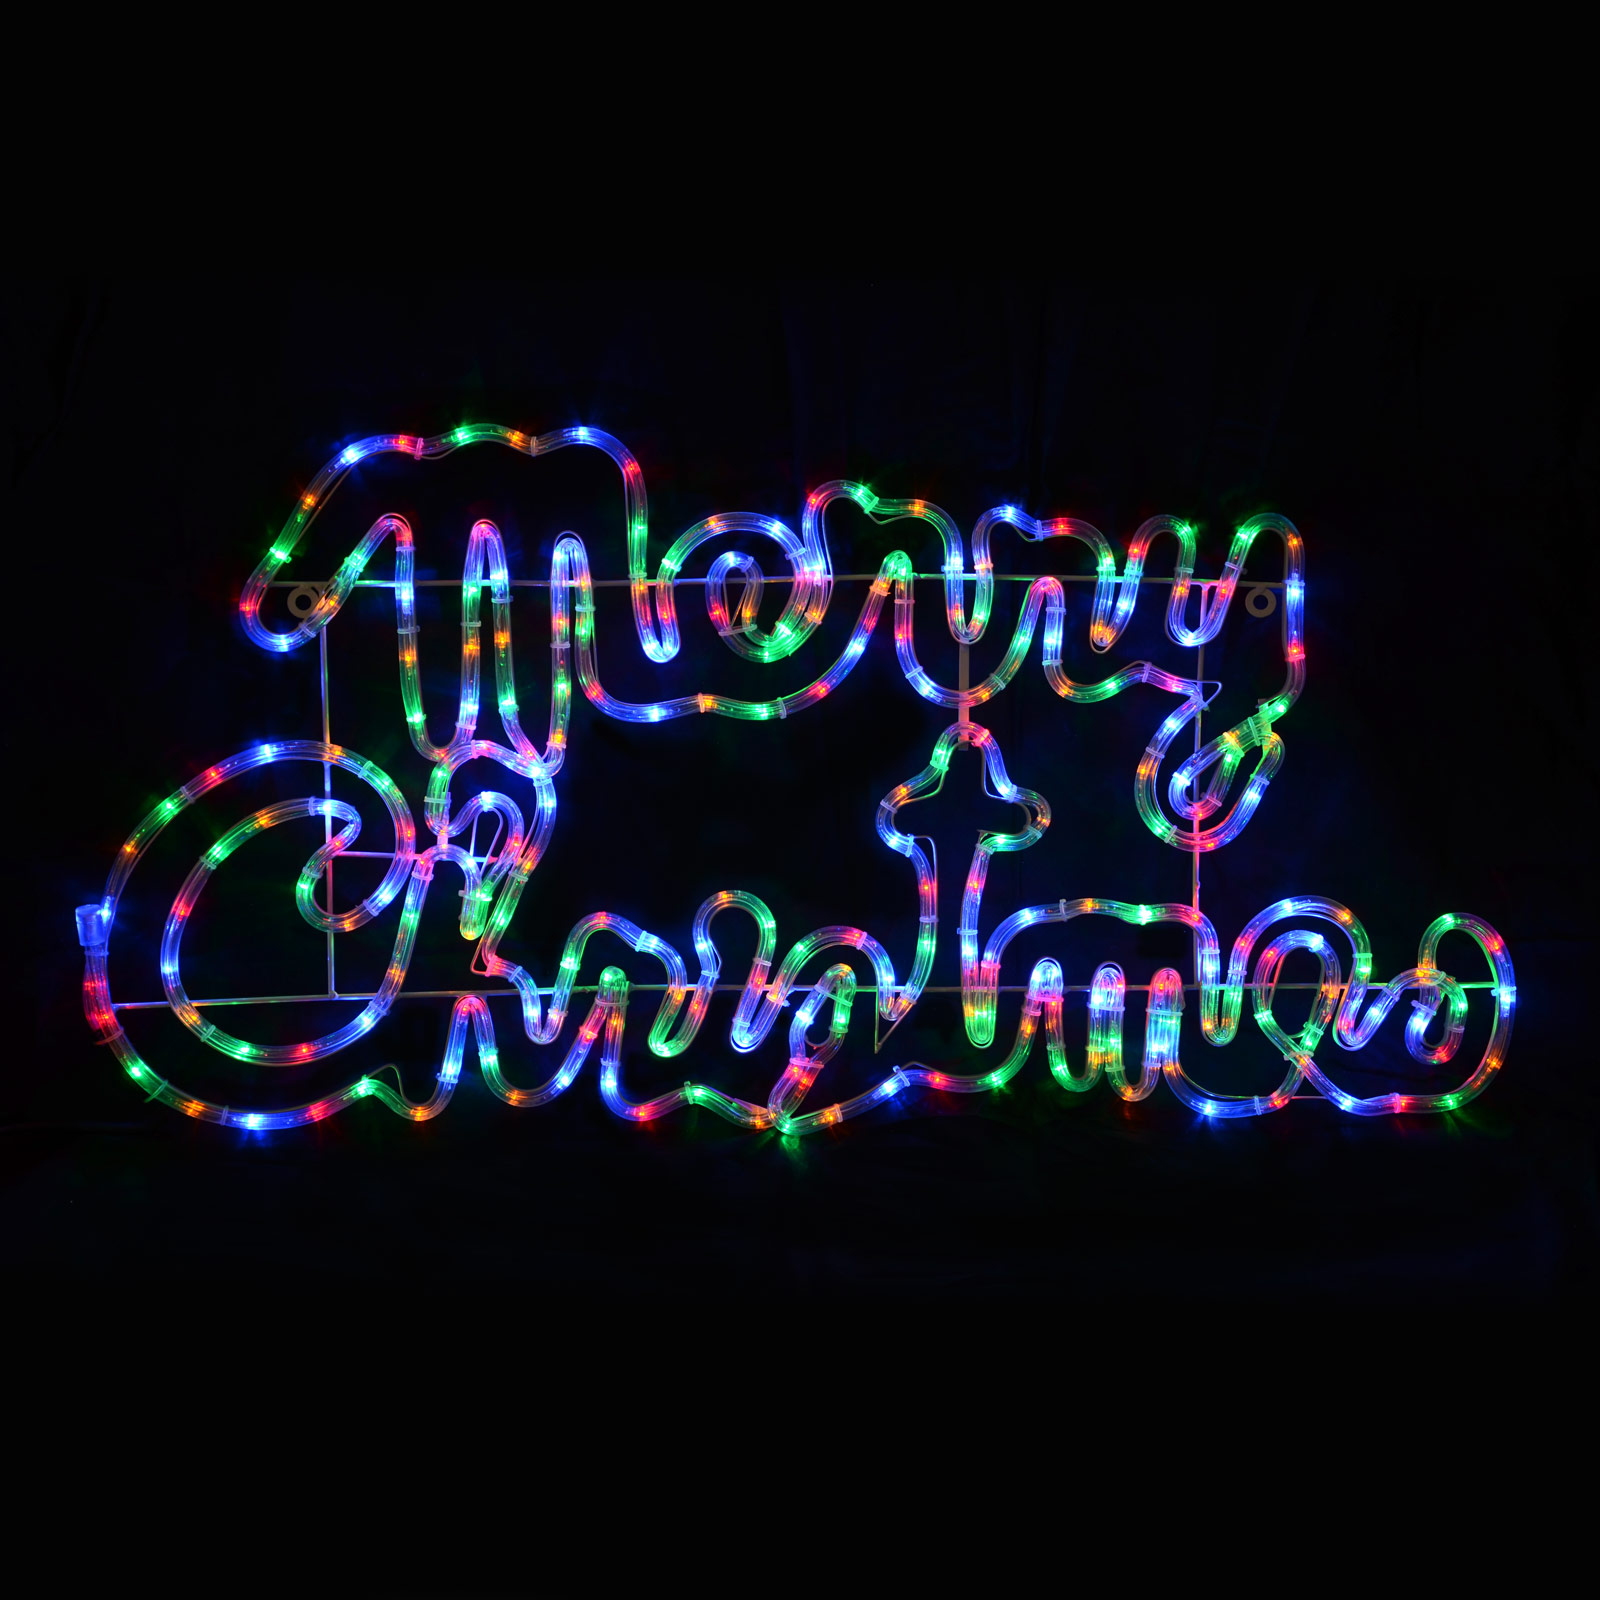 Led Lights For Outdoor Signs : Merry Christmas Lighted Outdoor Sign LED